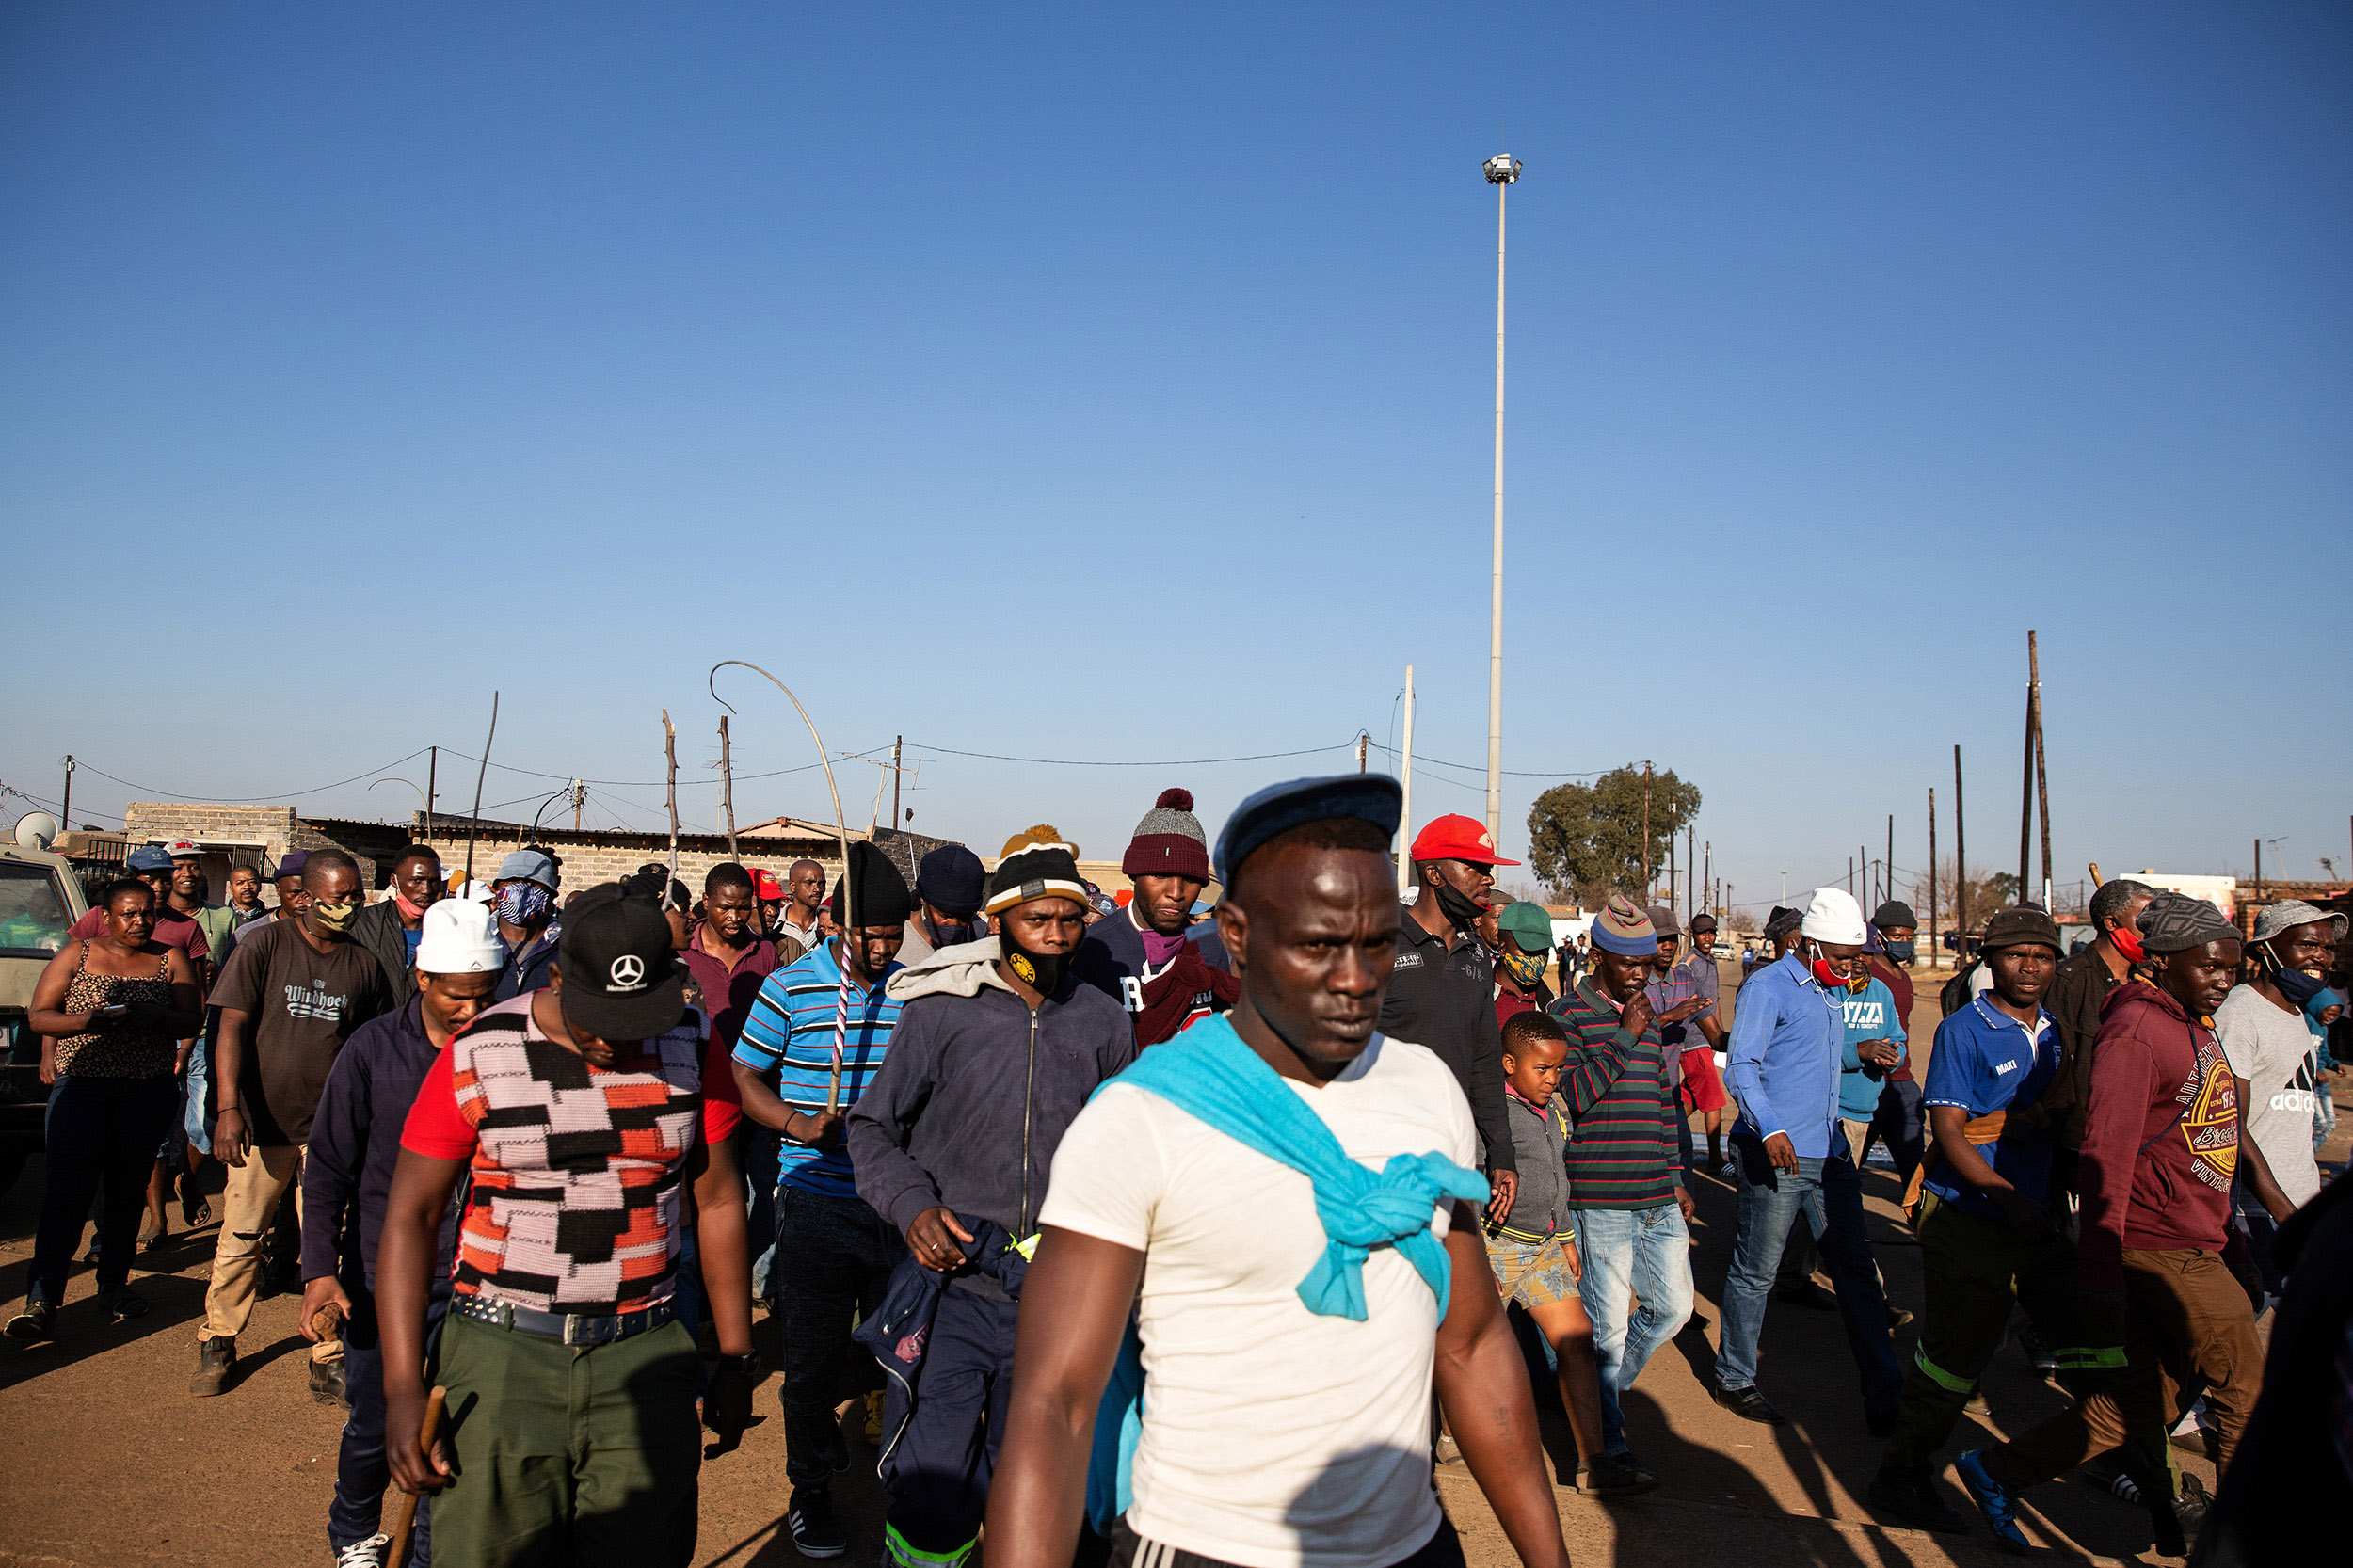 7 July 2020: Children joined the group of people singing xenophobic songs as they marched through Thokoza.